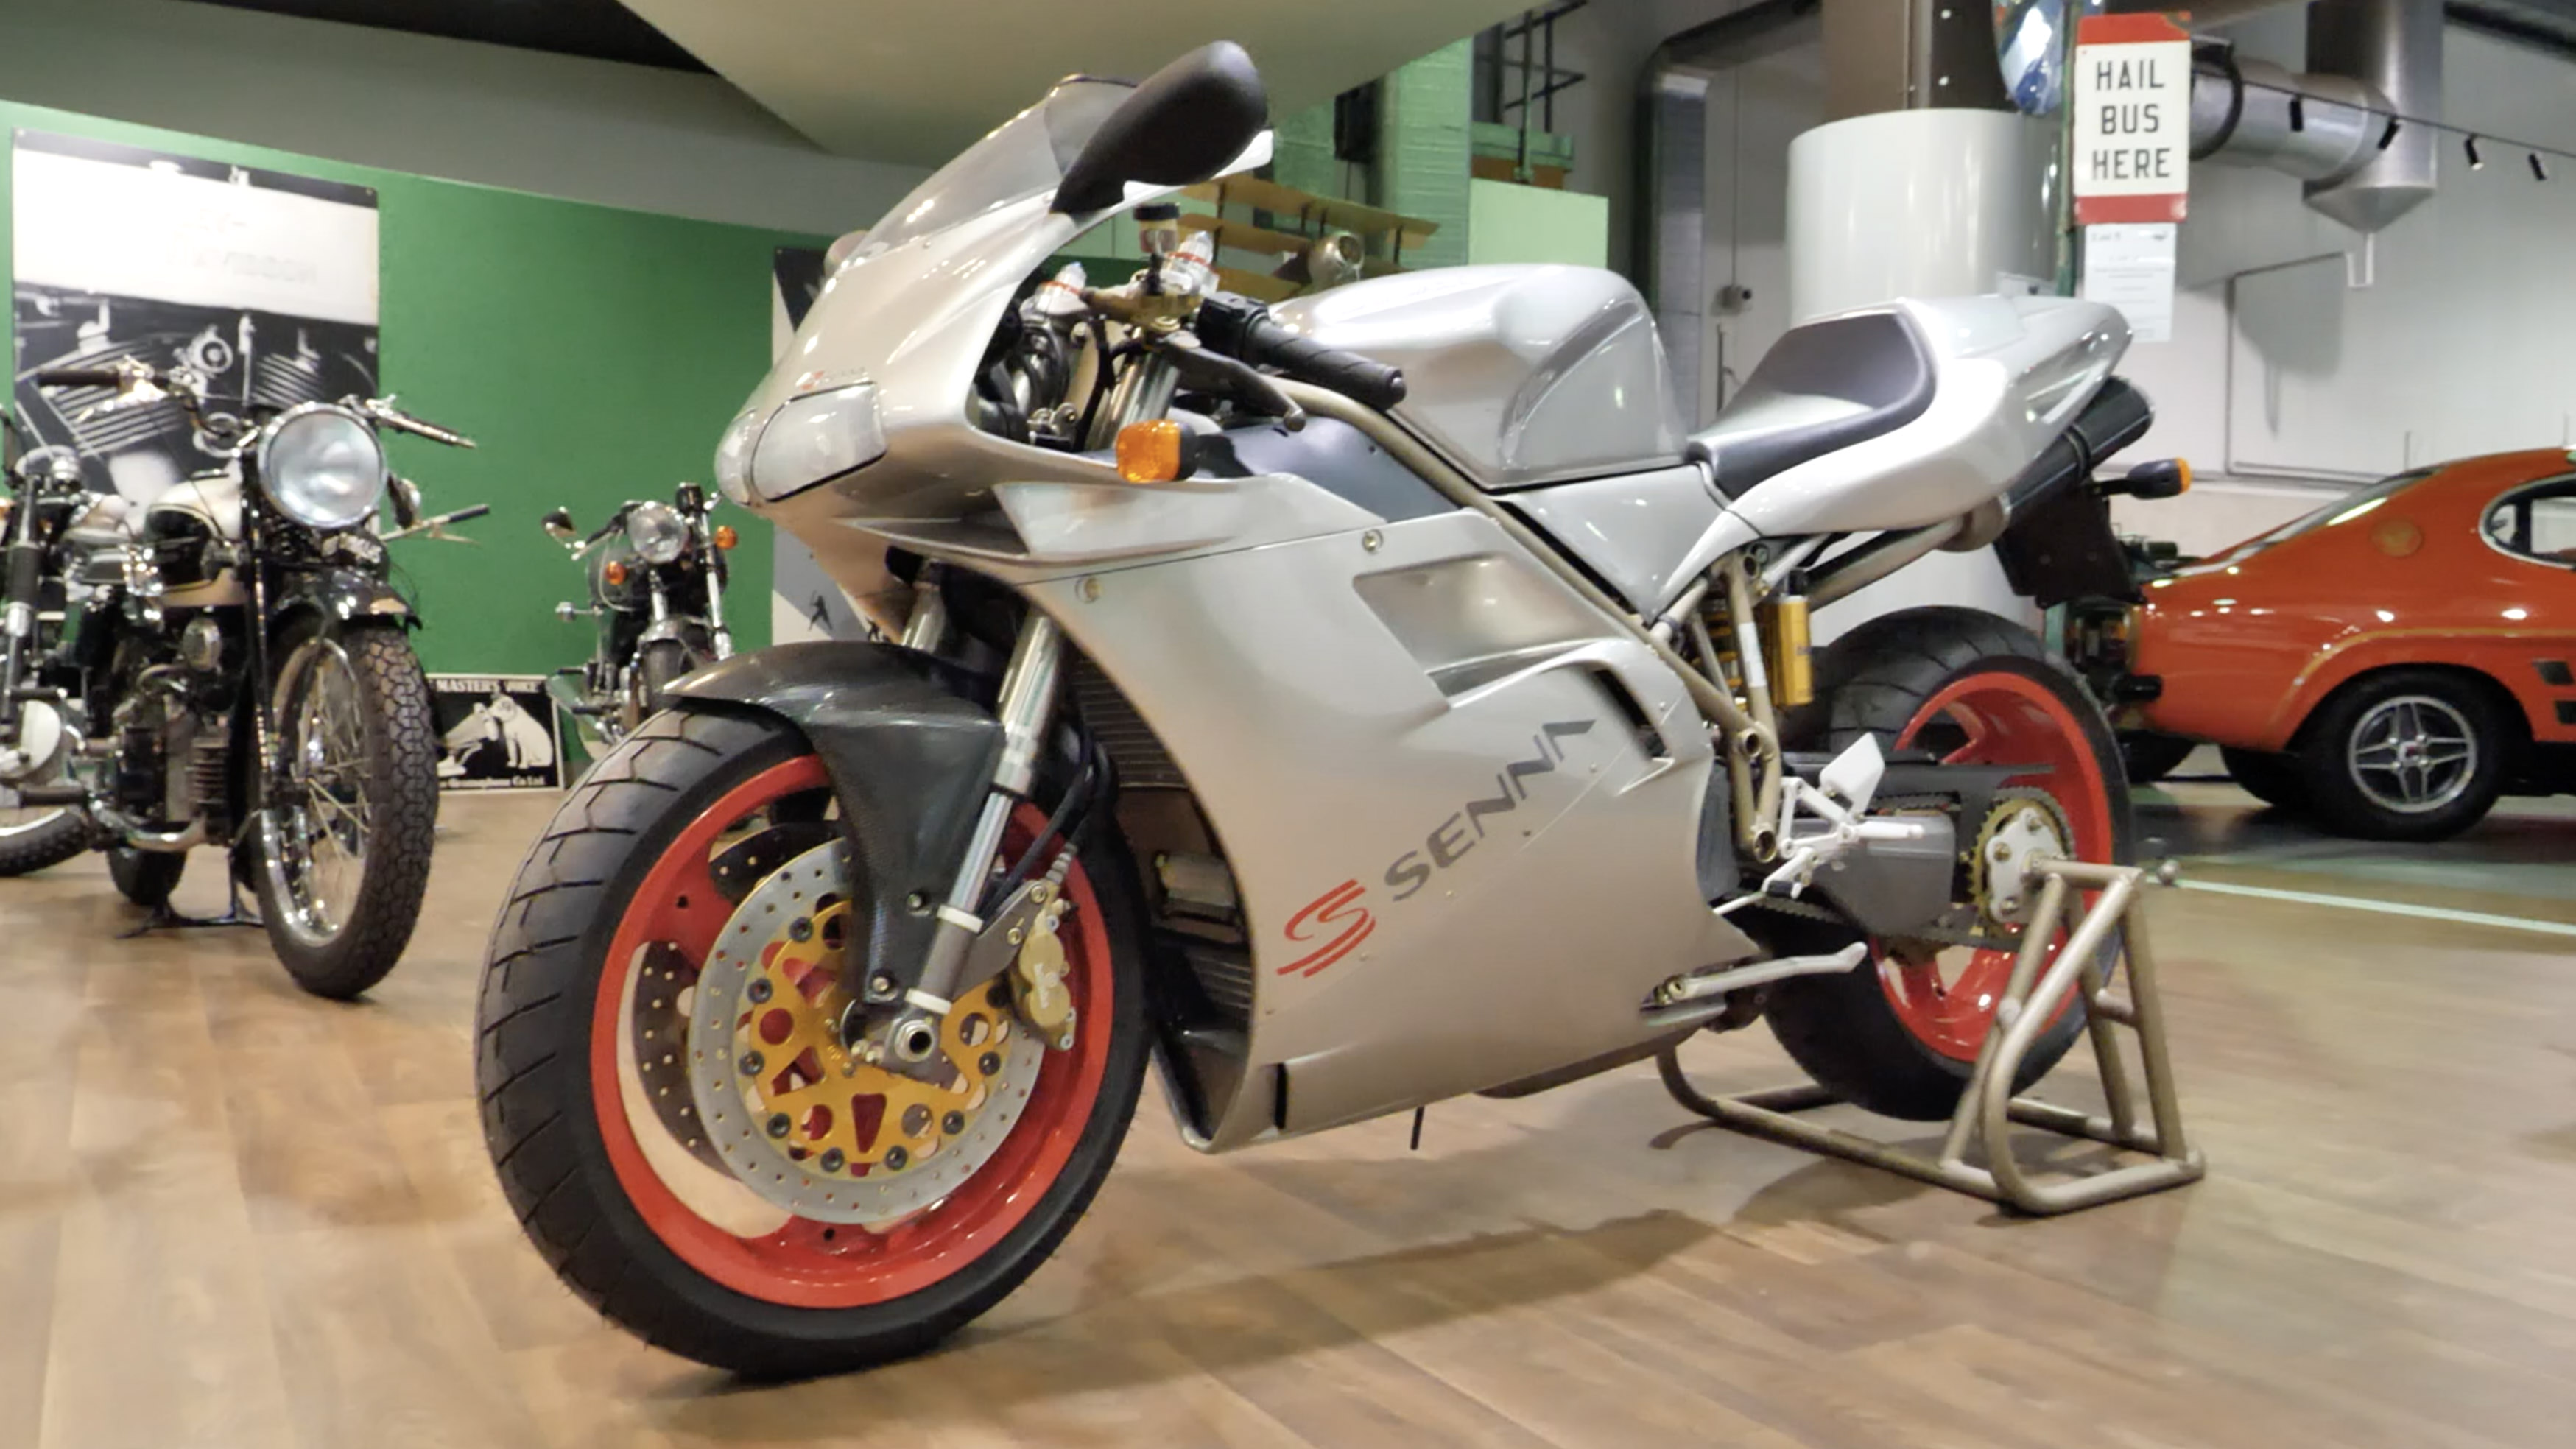 1997 Ducati 916 Senna II Motorcycle (Build No. 092/300) - 2020 Shannons Spring Timed Online Auction